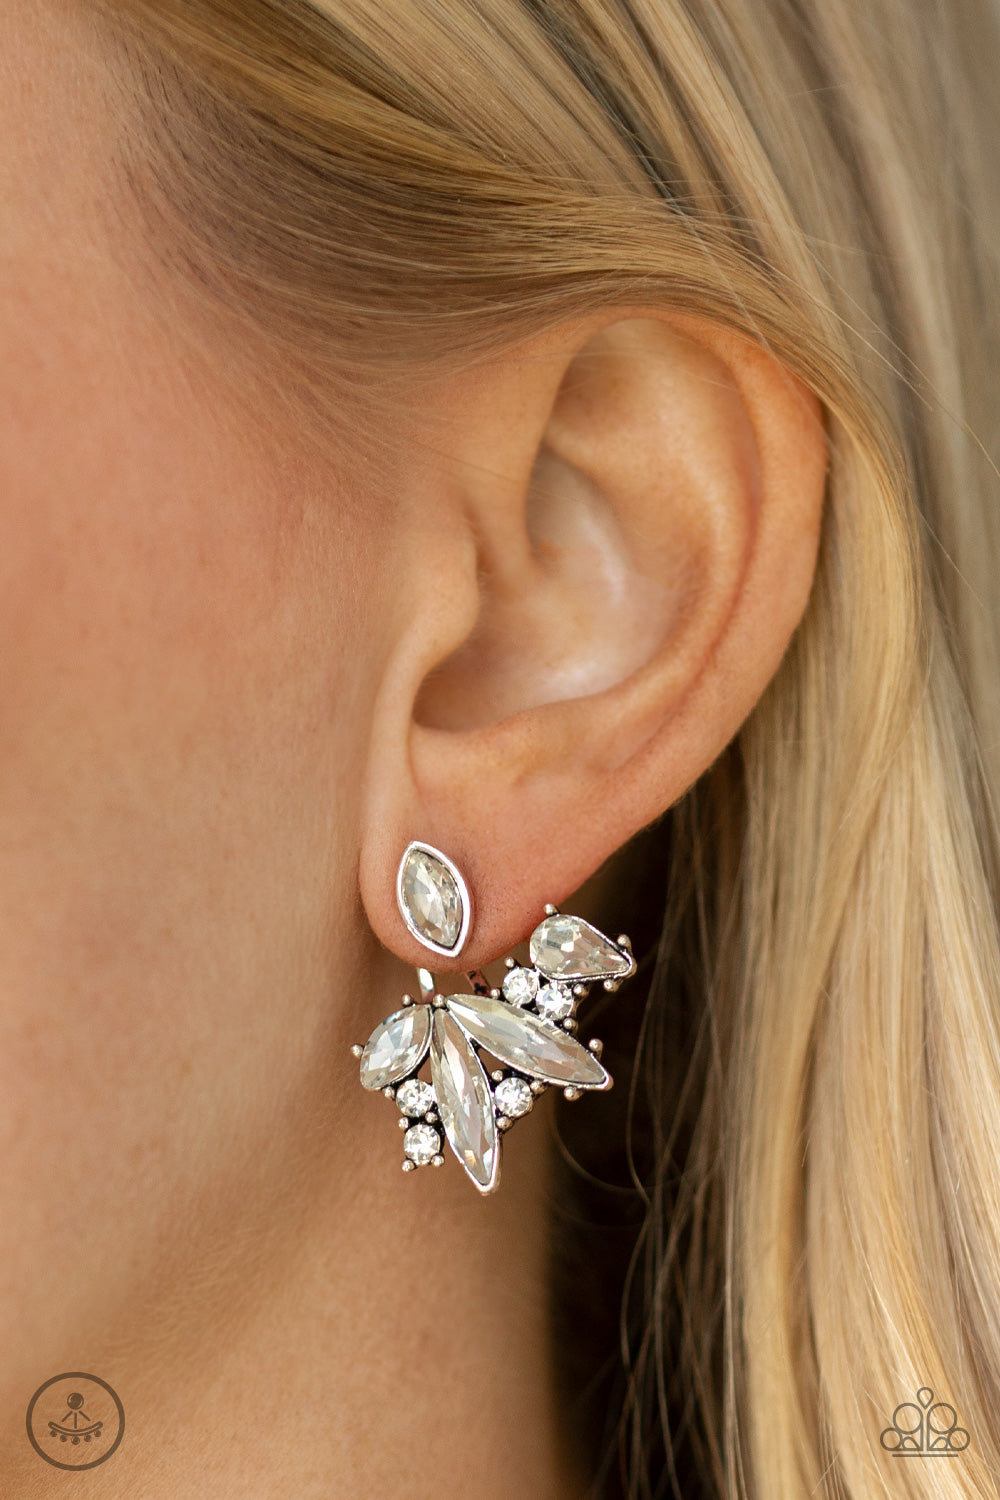 Deco Dynamite - White Post Earrings - Paparazzi Accessories